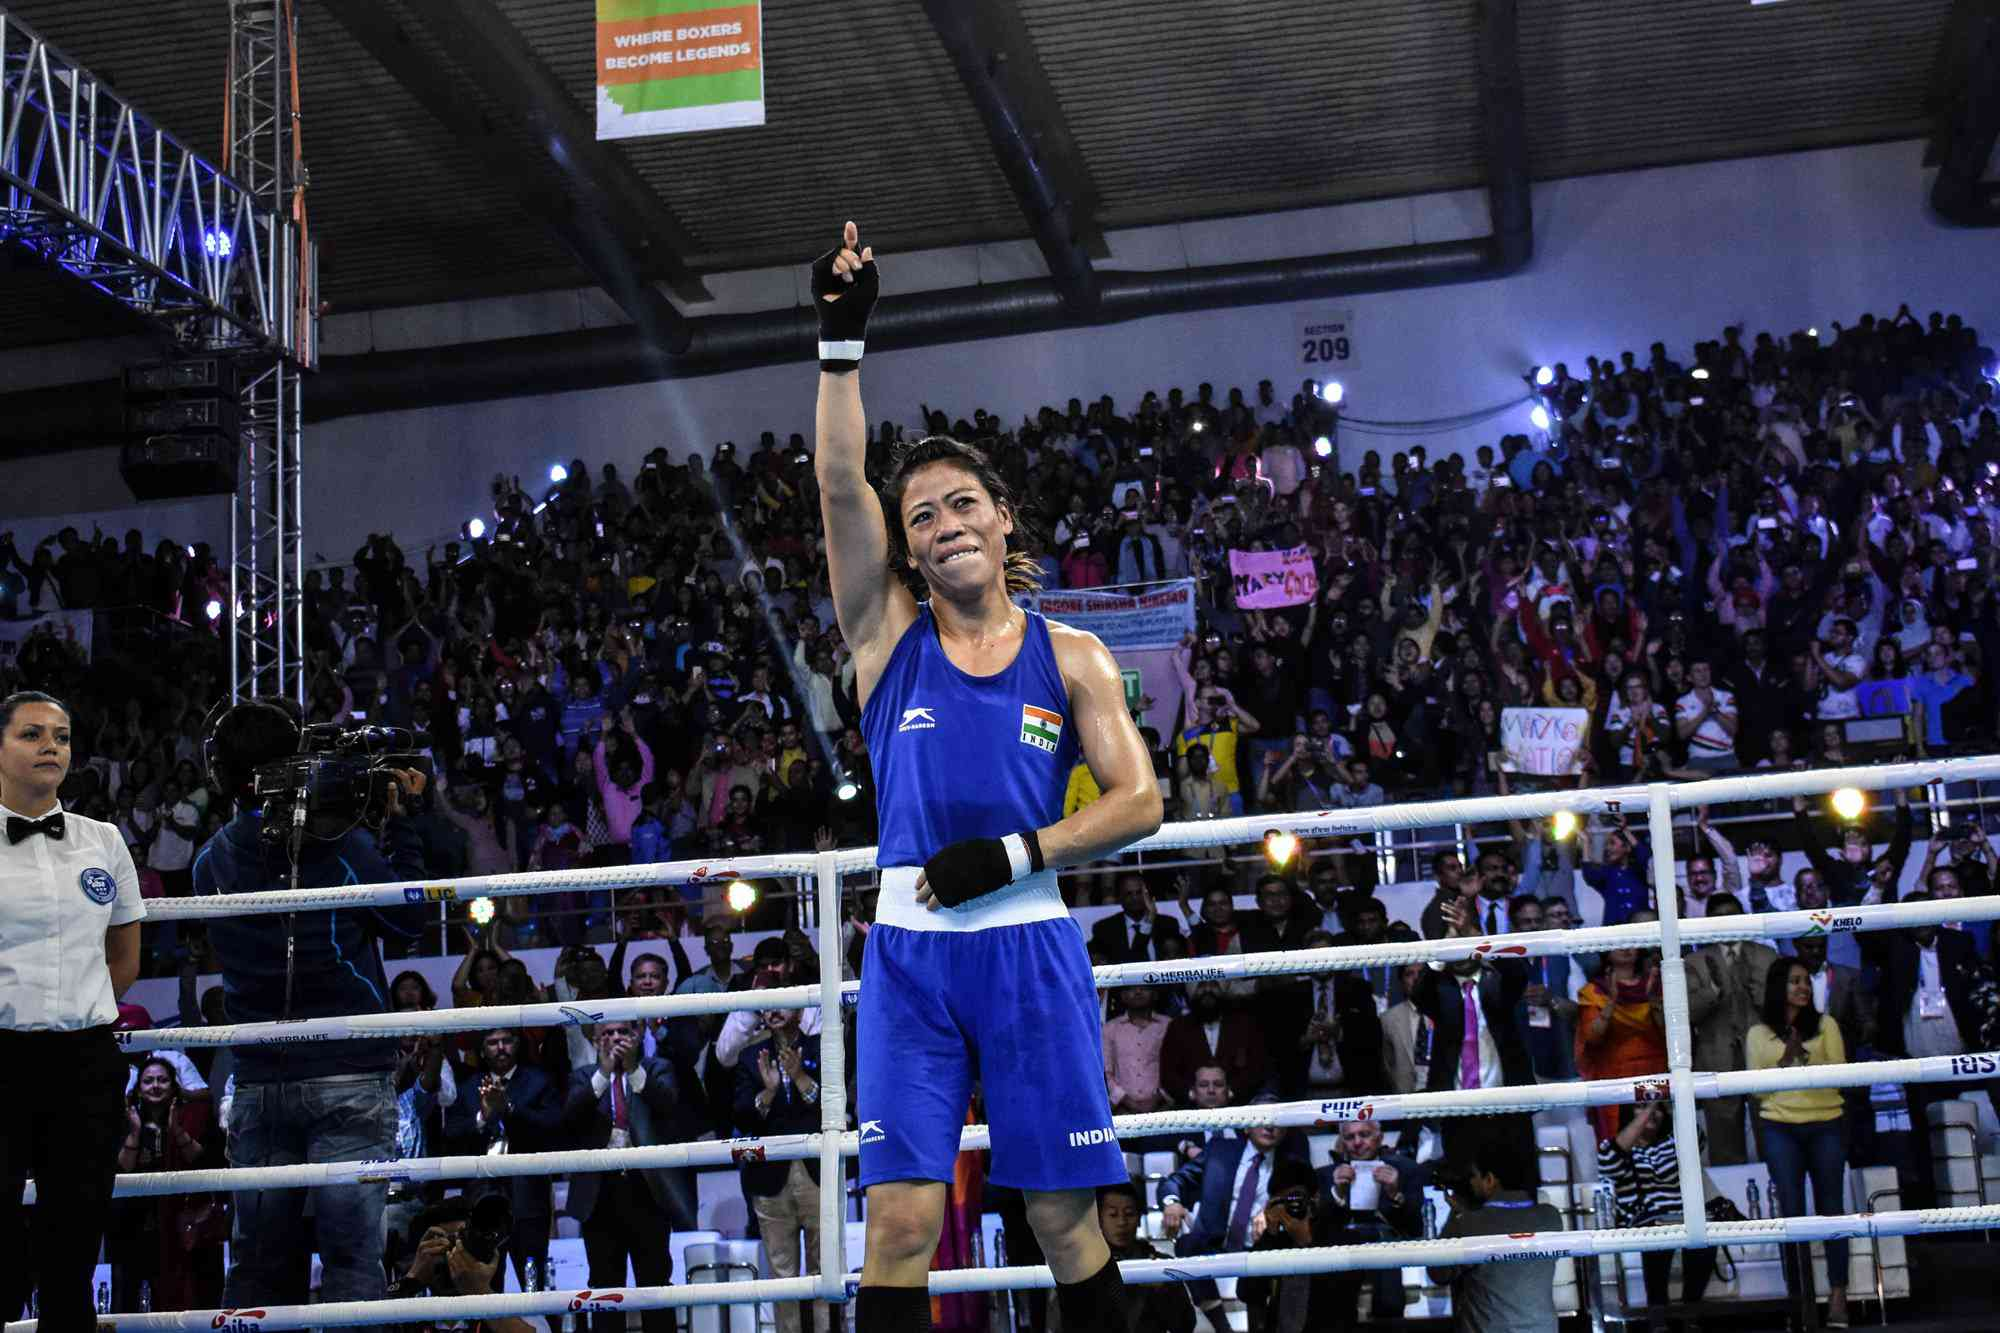 India's Mary Kom reacts during the women's world boxing championships, where she won her sixth title (AIBA)